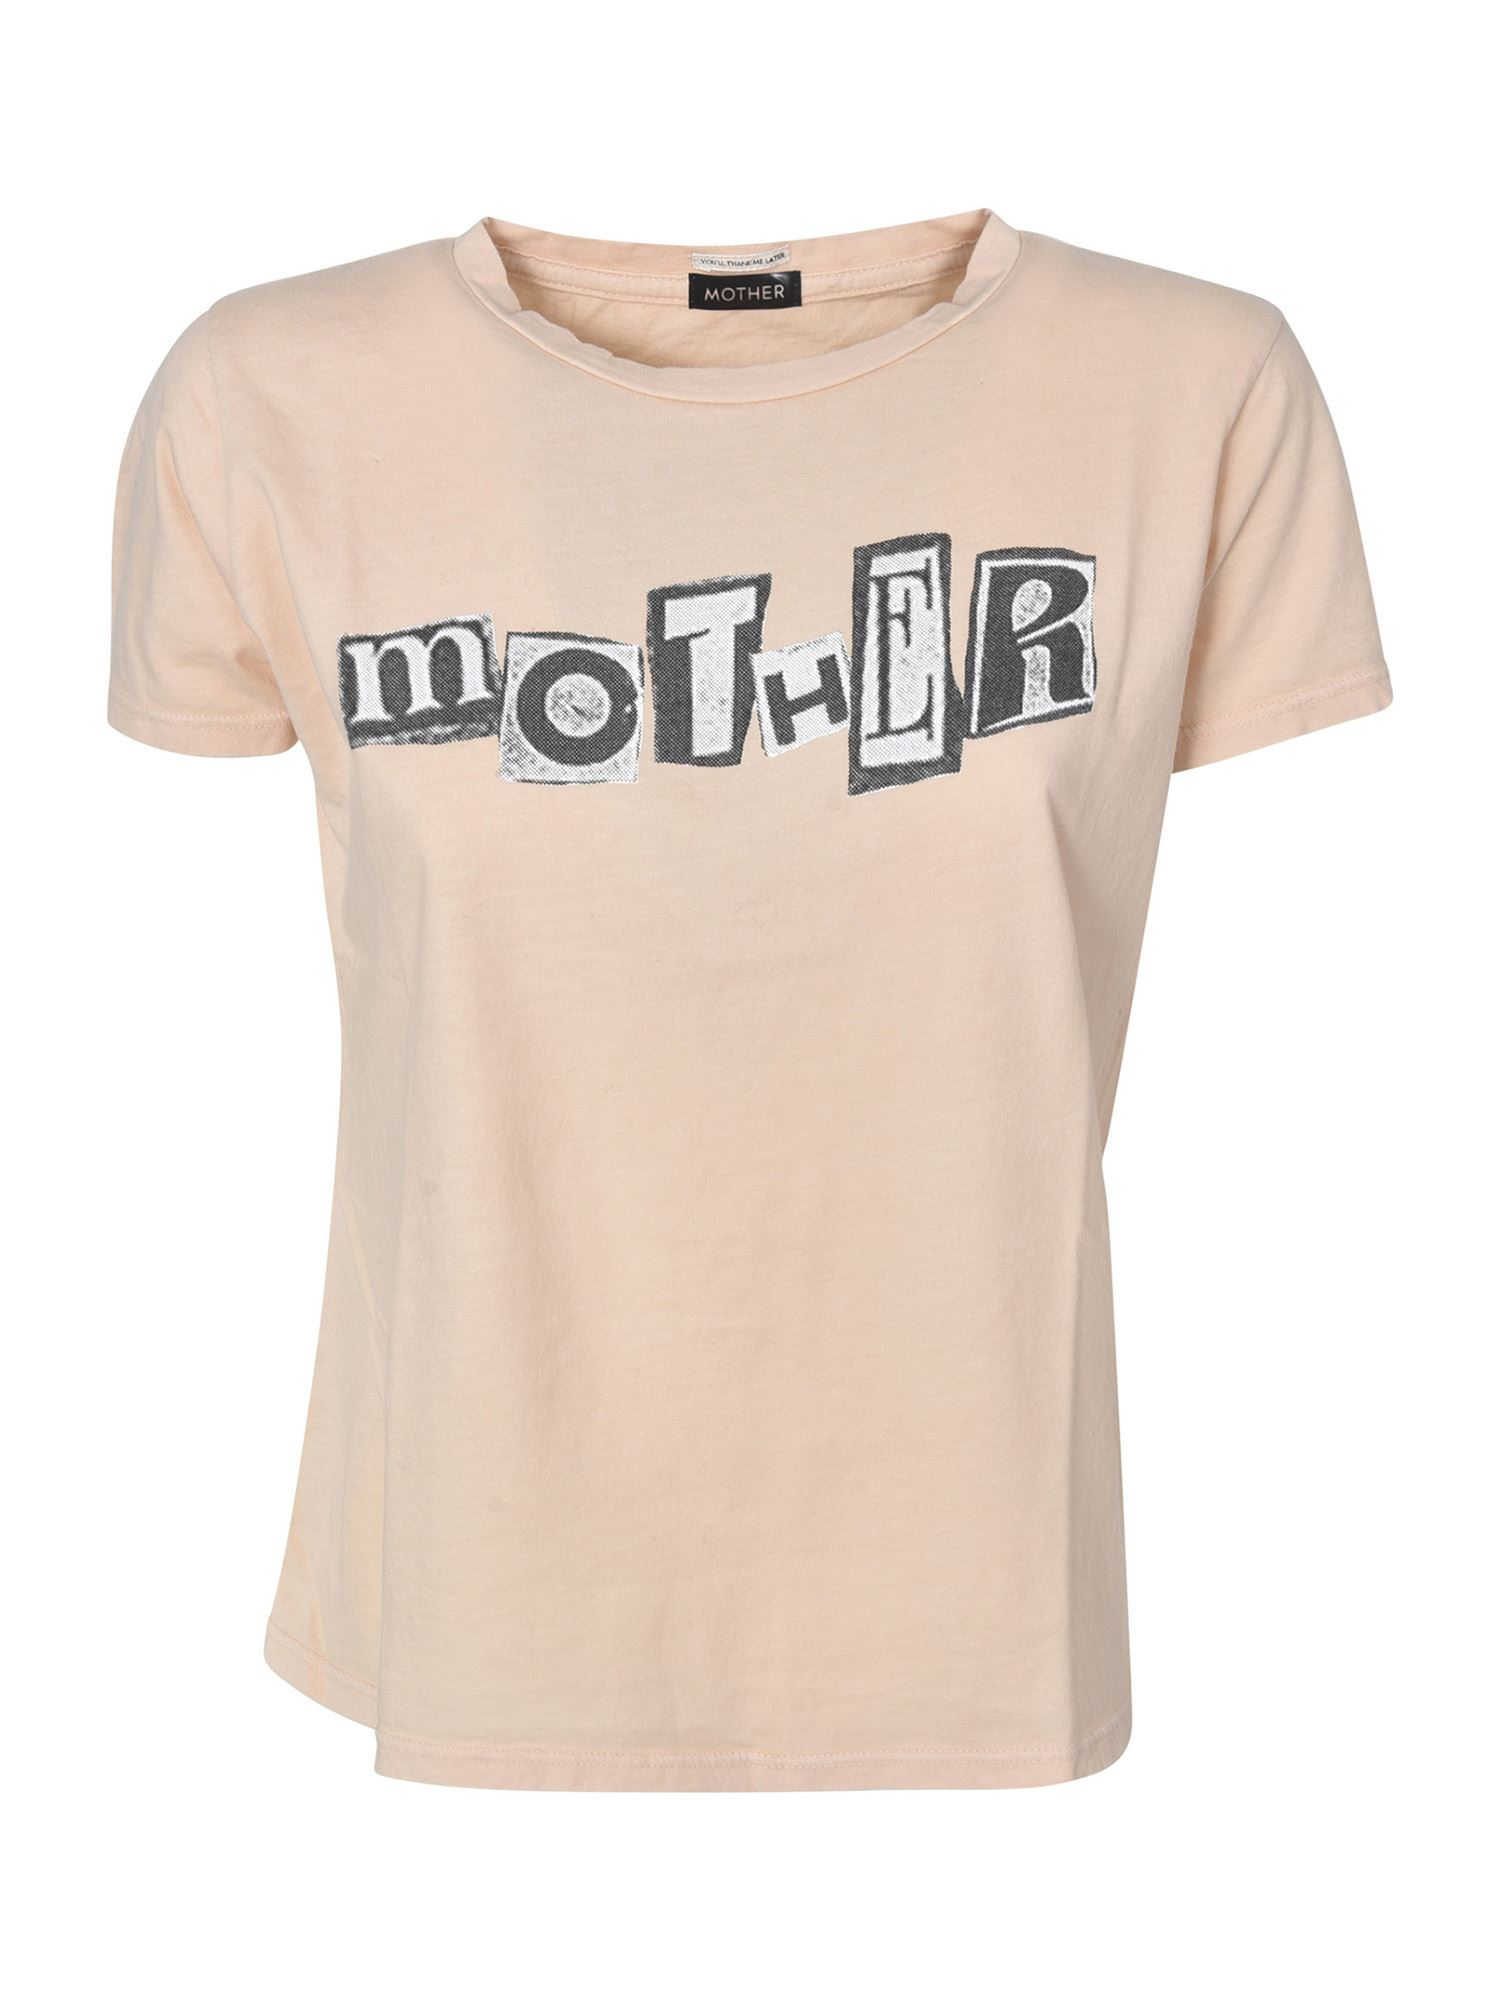 Mother Cottons ITTY BITTY GOODIE GOODIE T-SHIRT IN PINK